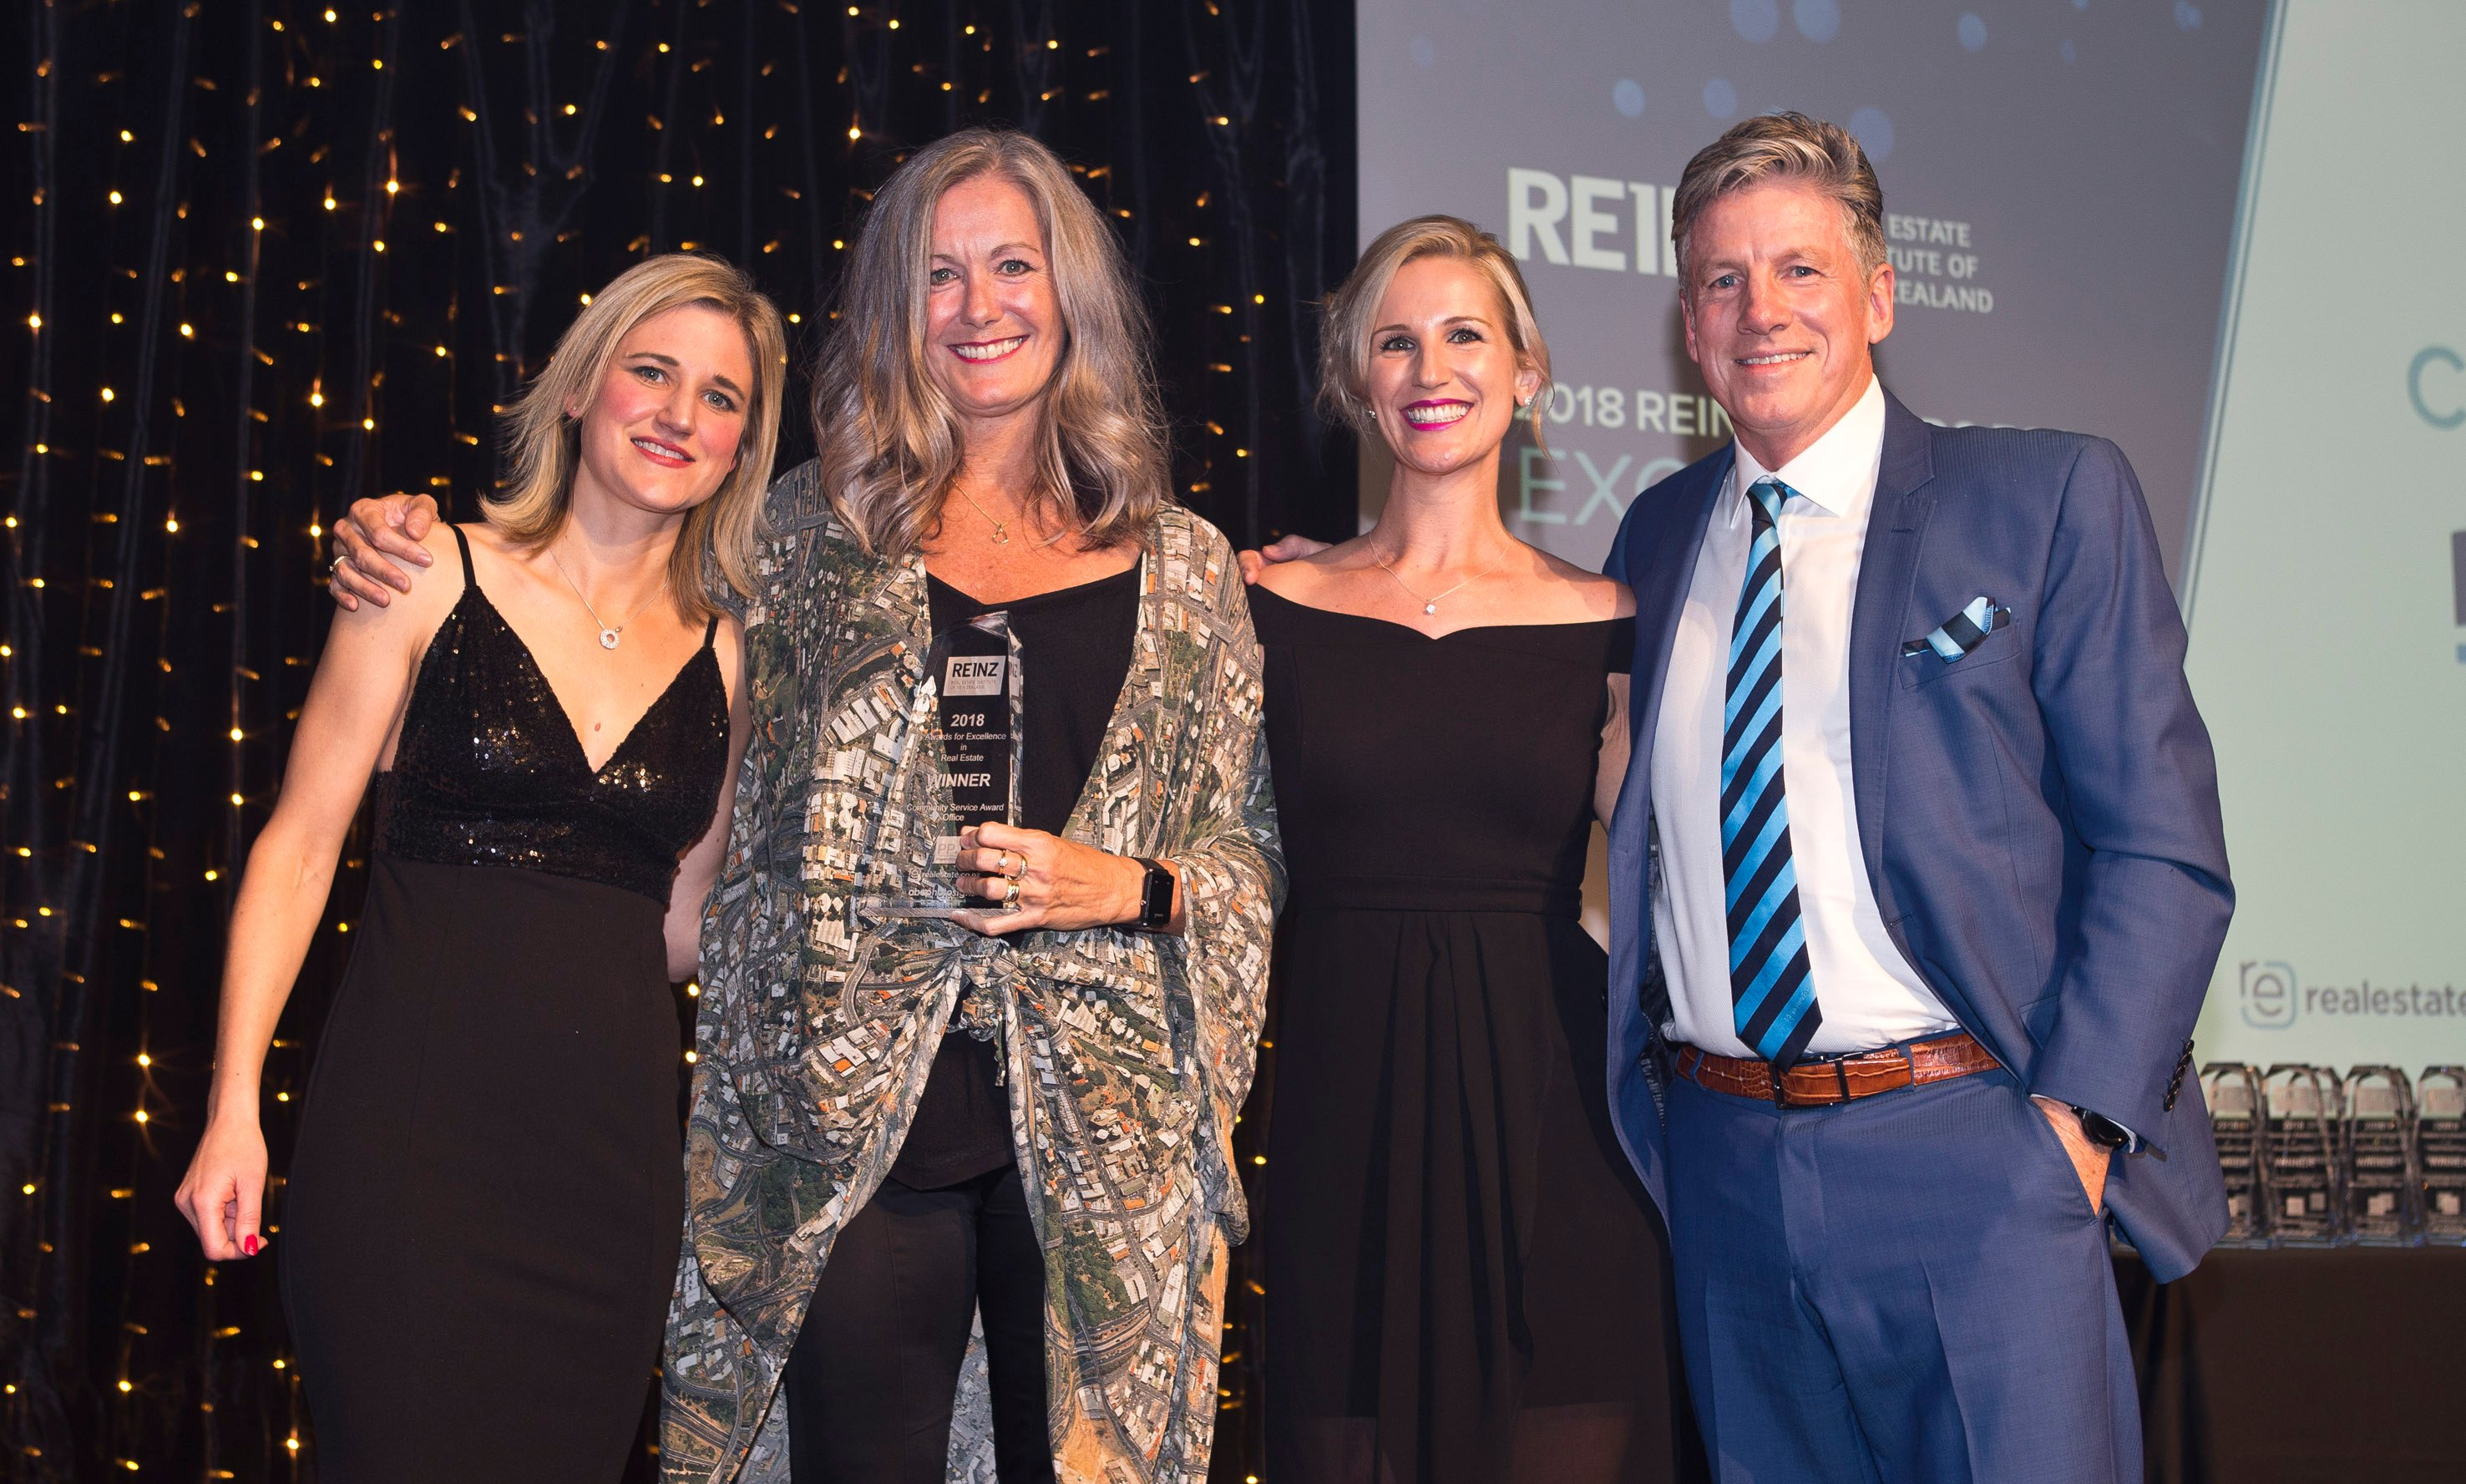 Community Service Office - Bindi Norwell REINZ CEO, Jaci Stevenson Community Relationship Manager C&C, Vanessa Taylor Head of Marketing realestate.co.nz, Martin Cooper Cooper & C - Copy